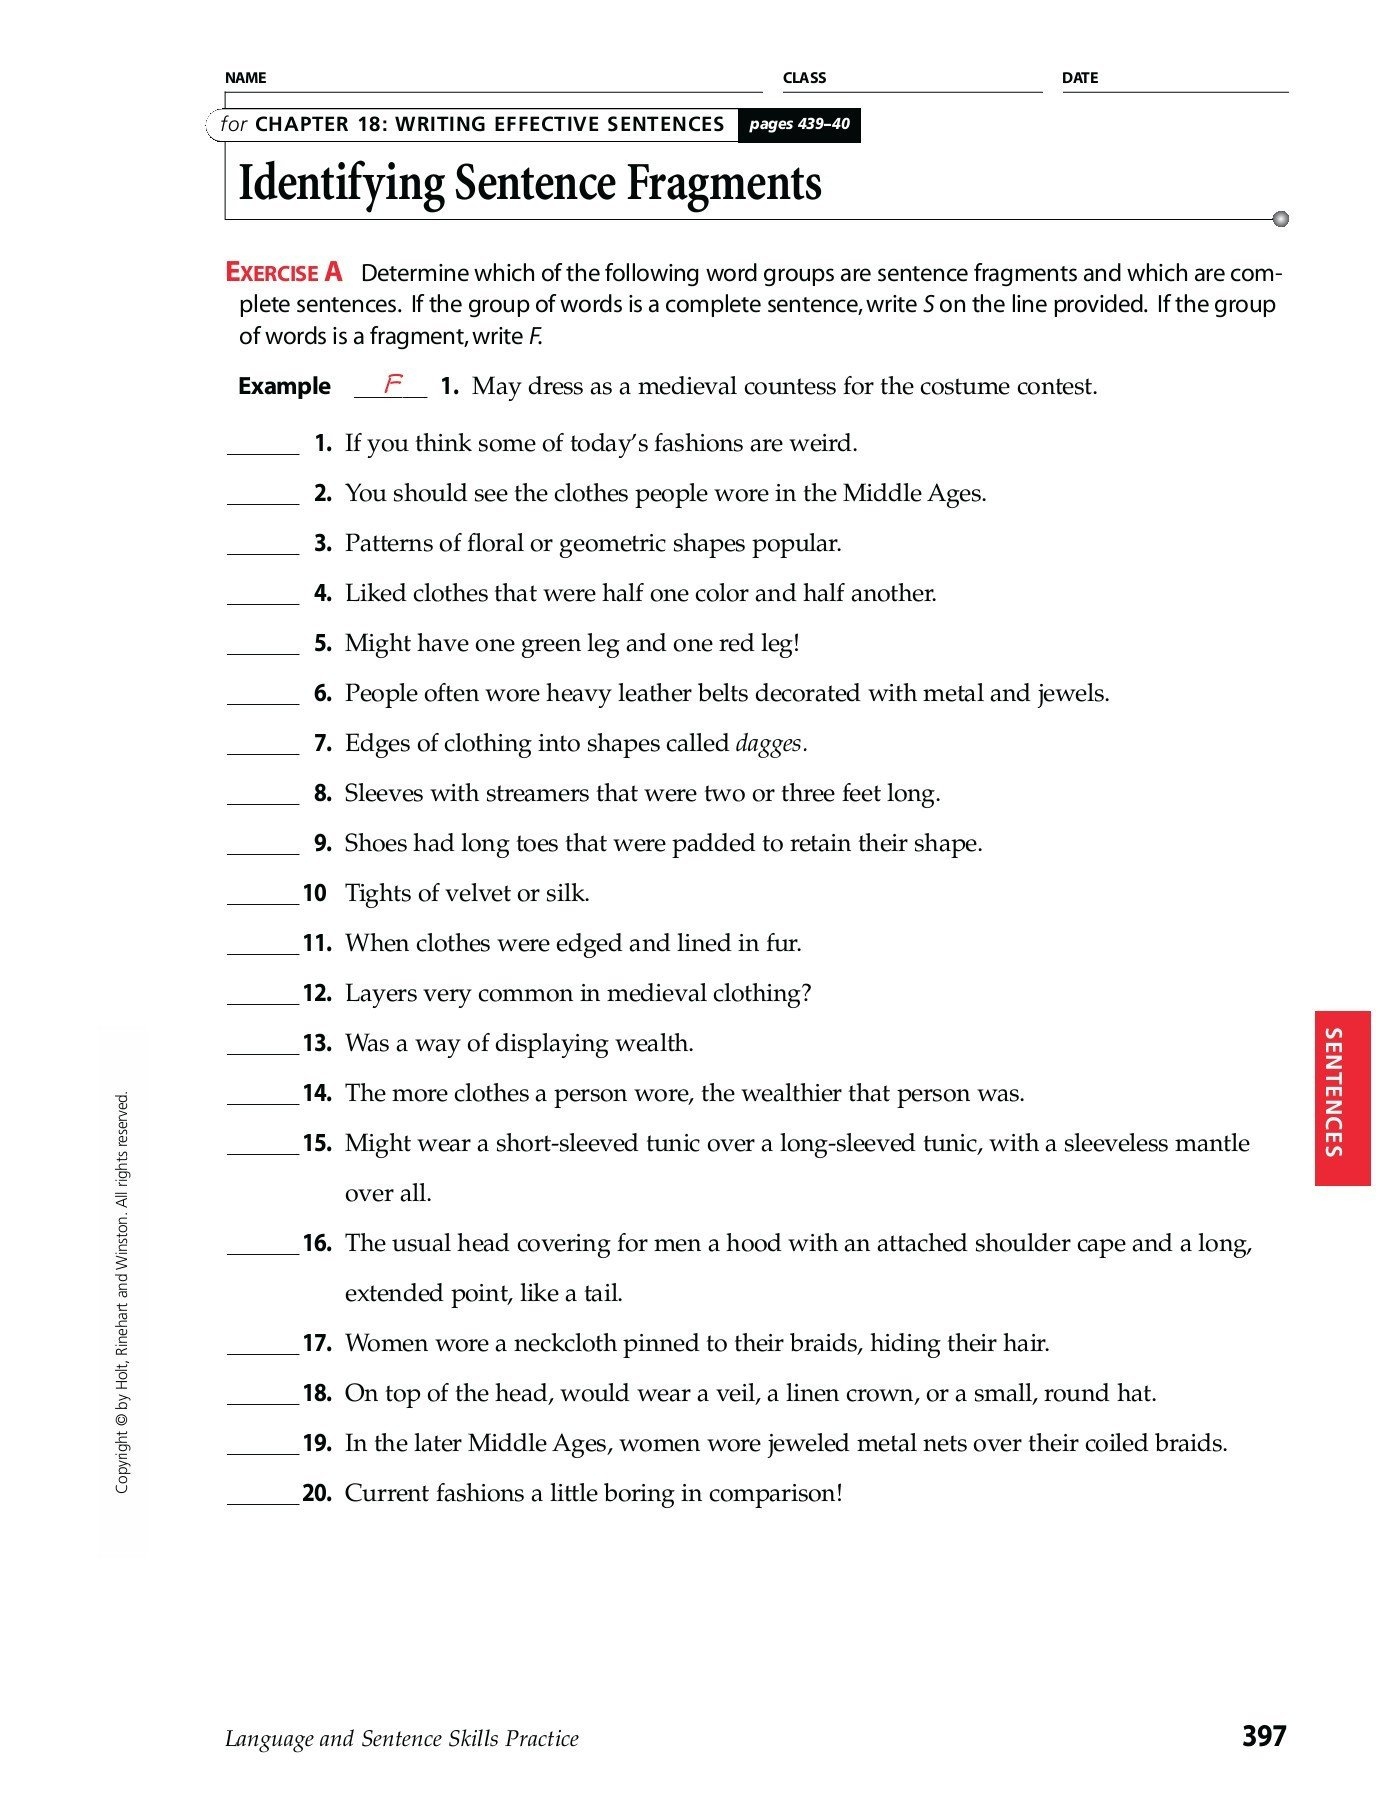 Complete Sentences Worksheet 4th Grade Chapter 18 Writing Effective Sentences Identifying